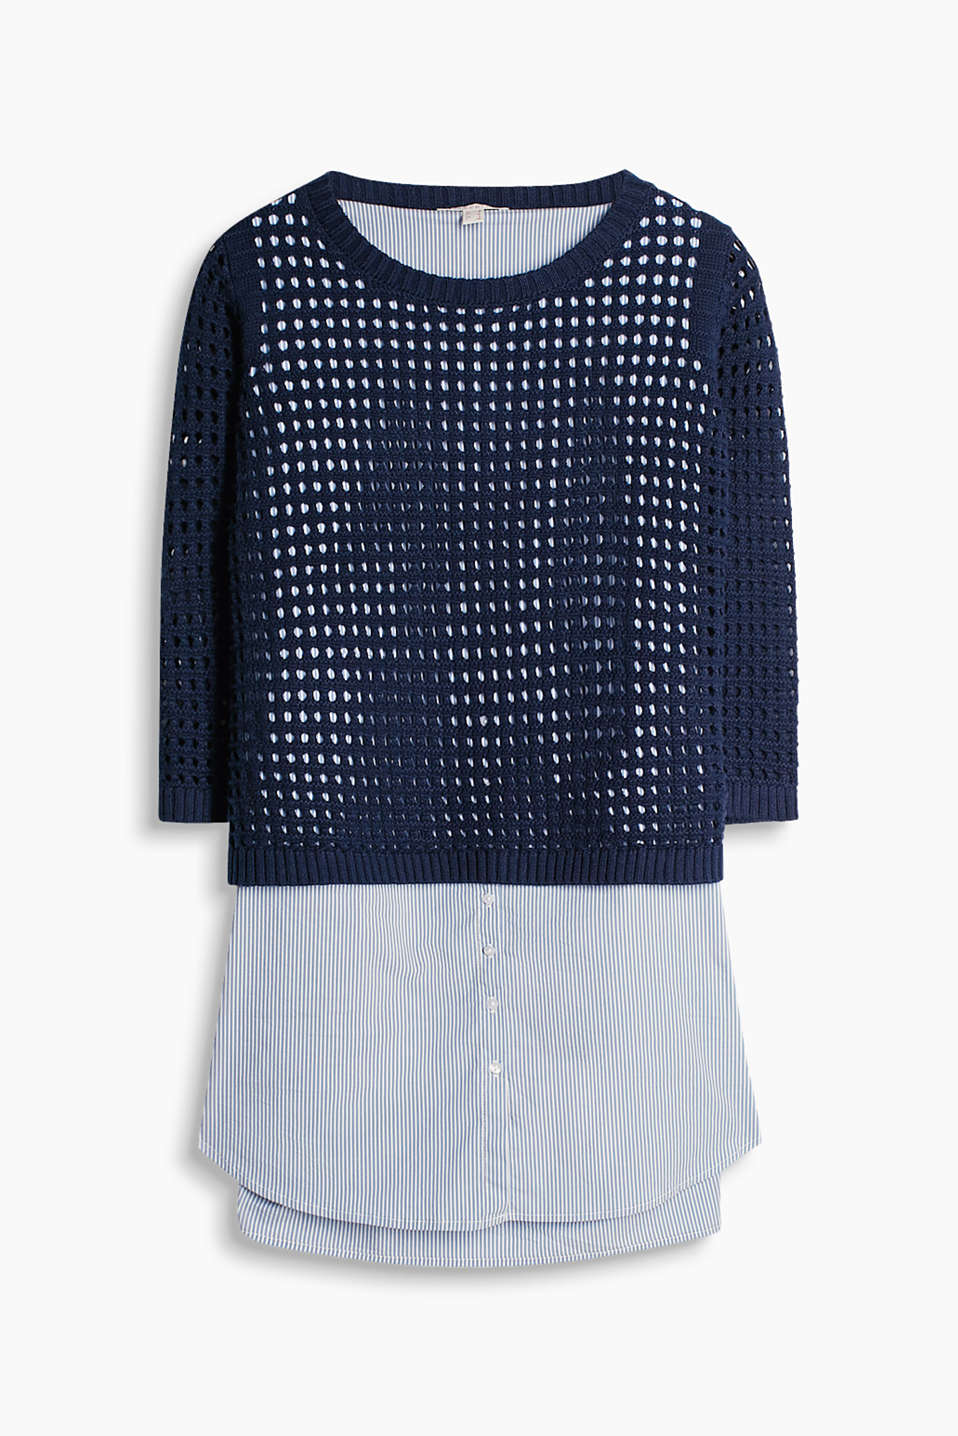 Innovative 2-in-1 jumper with an openwork pattern and an integrated woven striped top